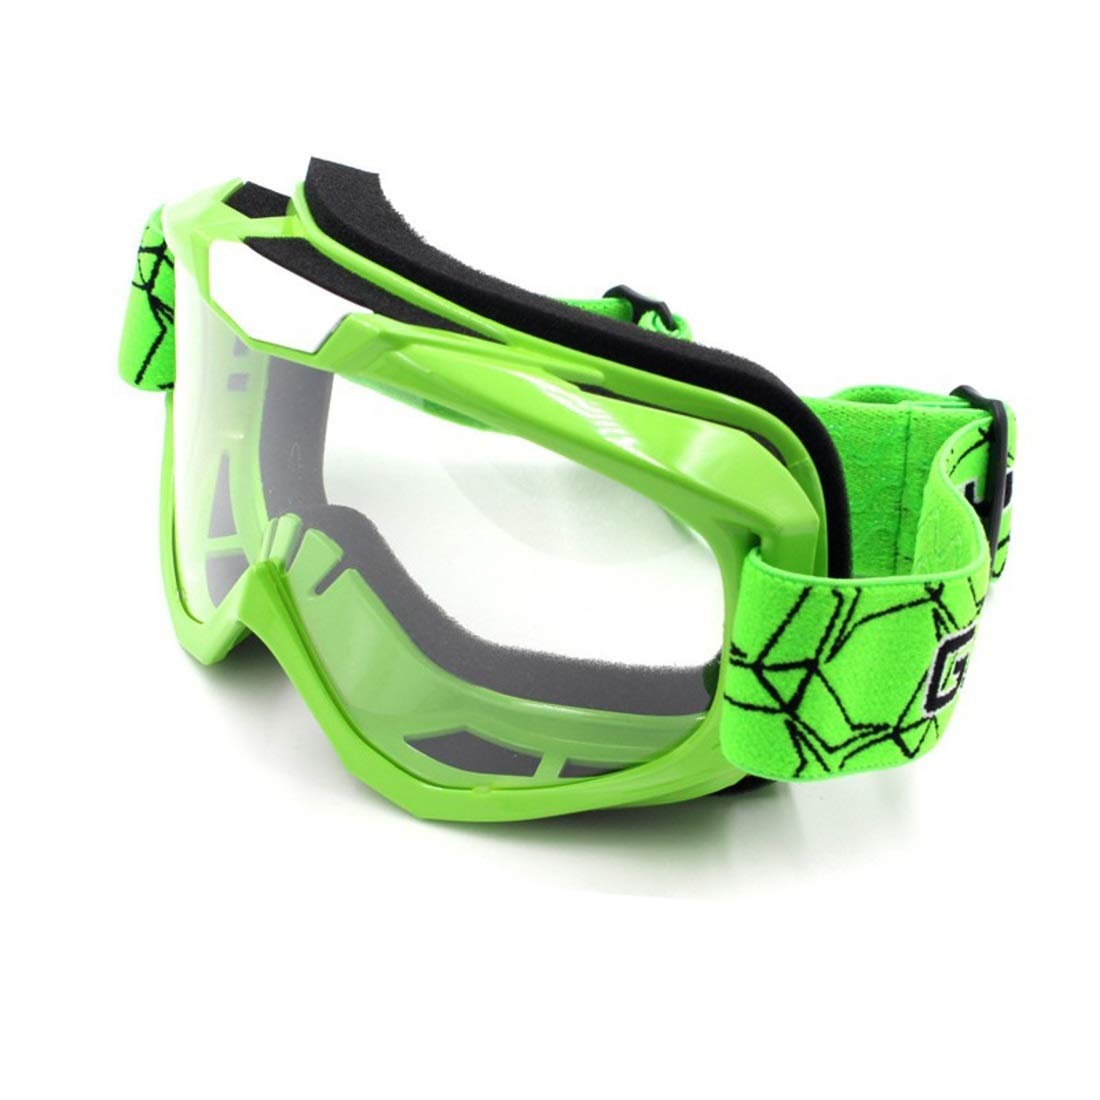 BAOYIT Motorcycle Goggles Off-Road Equipment Outdoor Riding Windproof Skiing Eye Protection Sand-Proof Glasses for Women Men (Color : Green) by BAOYIT